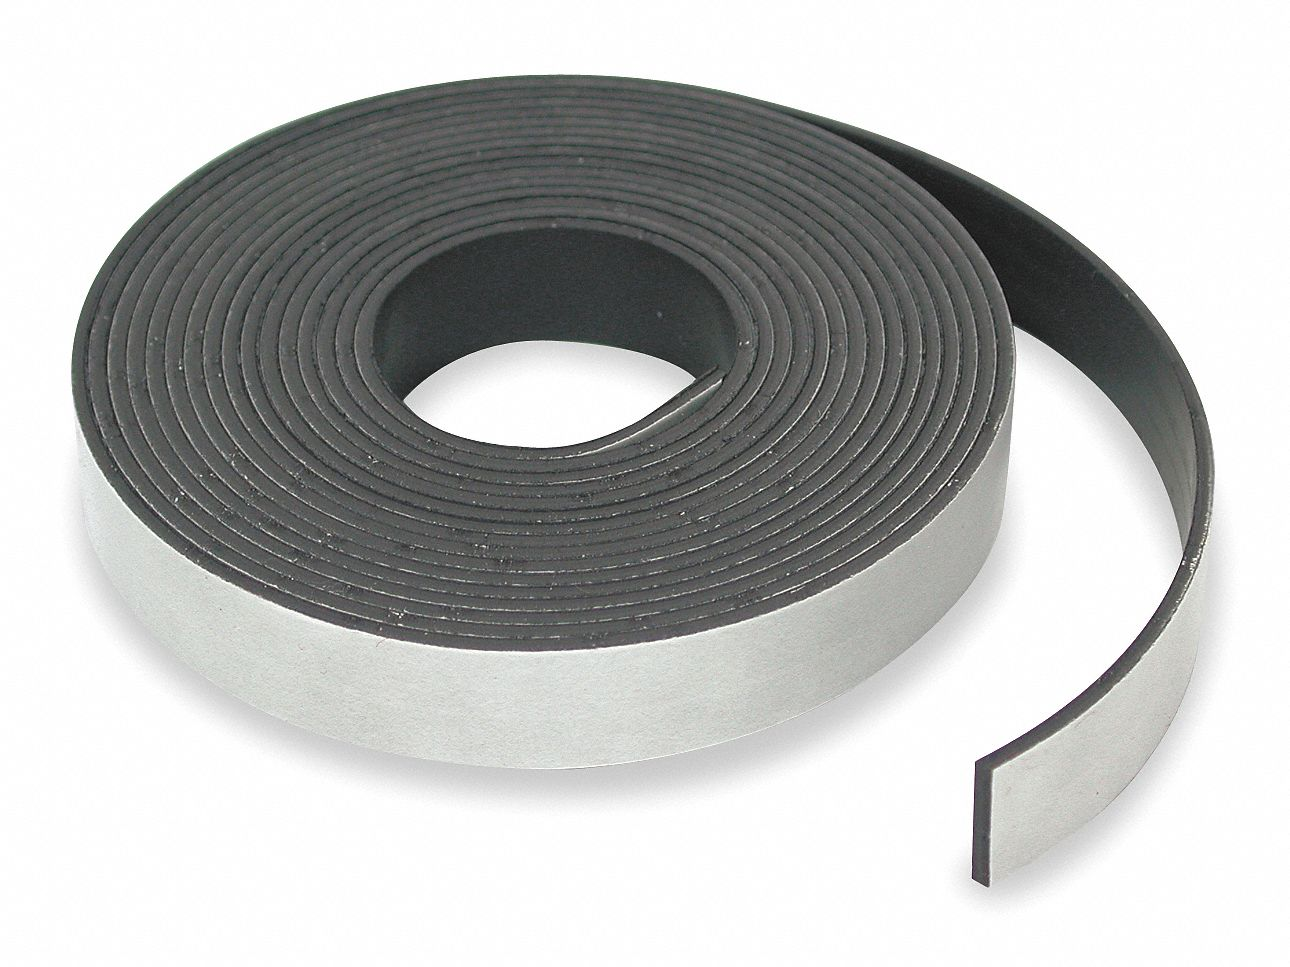 Magnetic Strip,  Indoor Adhesive,  24 lb Max. Pull,  10 ft Length,  2 in Width